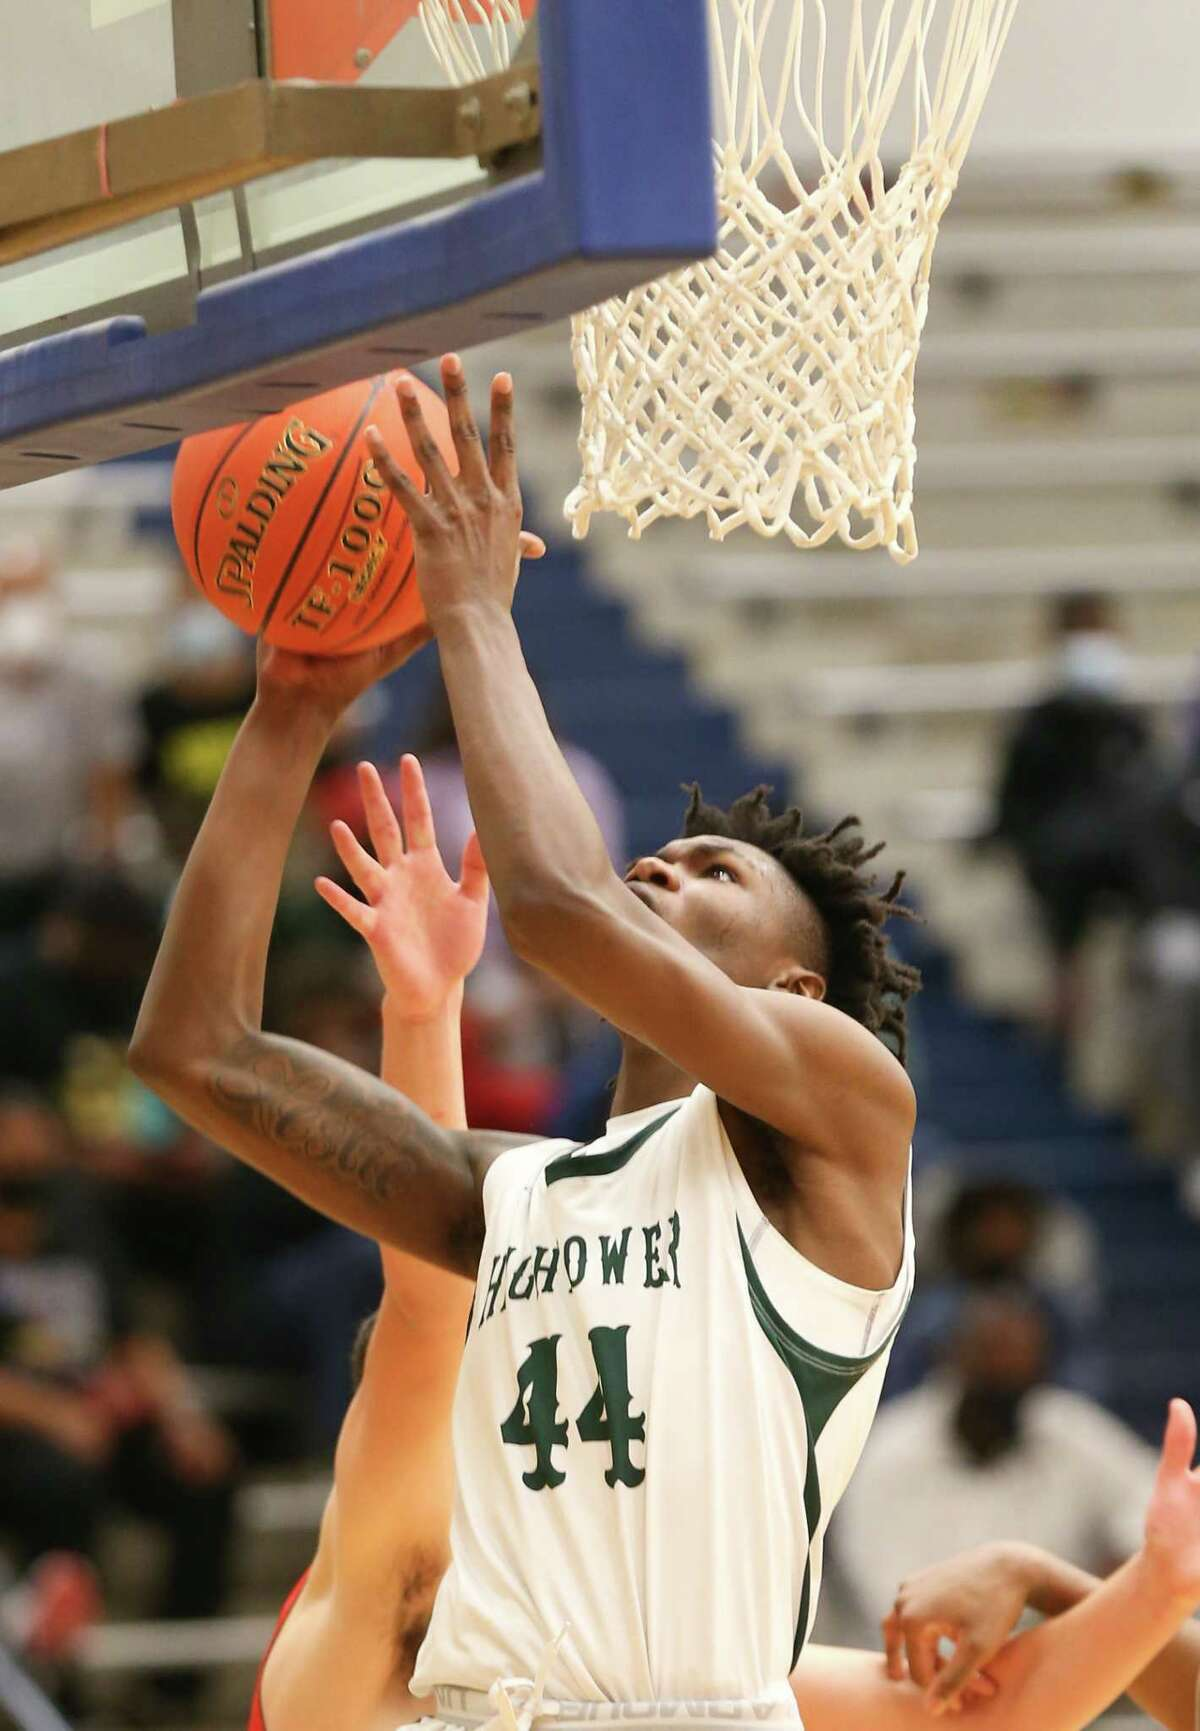 Hightower's Earnnest Barrow (44) puts up a shot against Crosby during playoff game action at Butler Fieldhouse in Houston on Wednesday, Feb. 24, 2021. Crosby won the game 68-54.